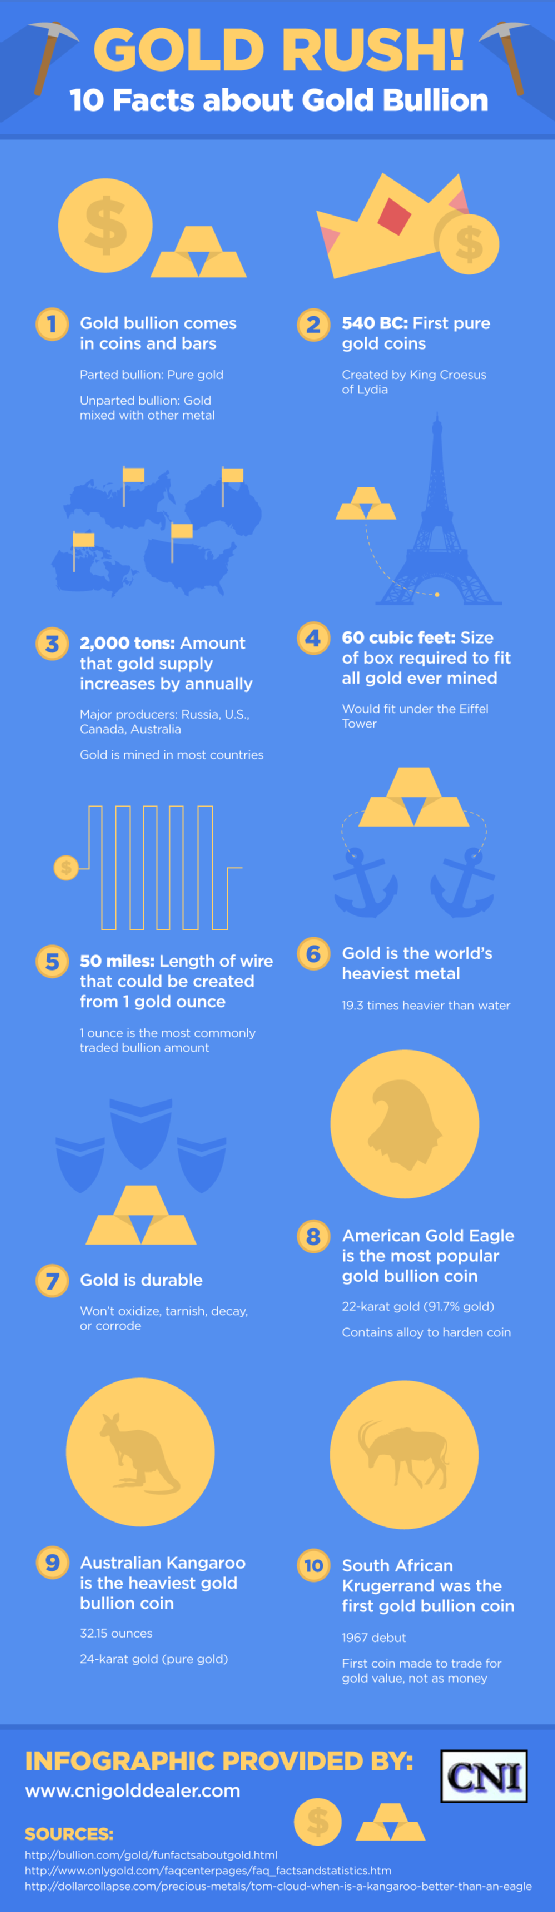 Gold-Rush-10-Facts-About-Gold-Bullion-Infographic